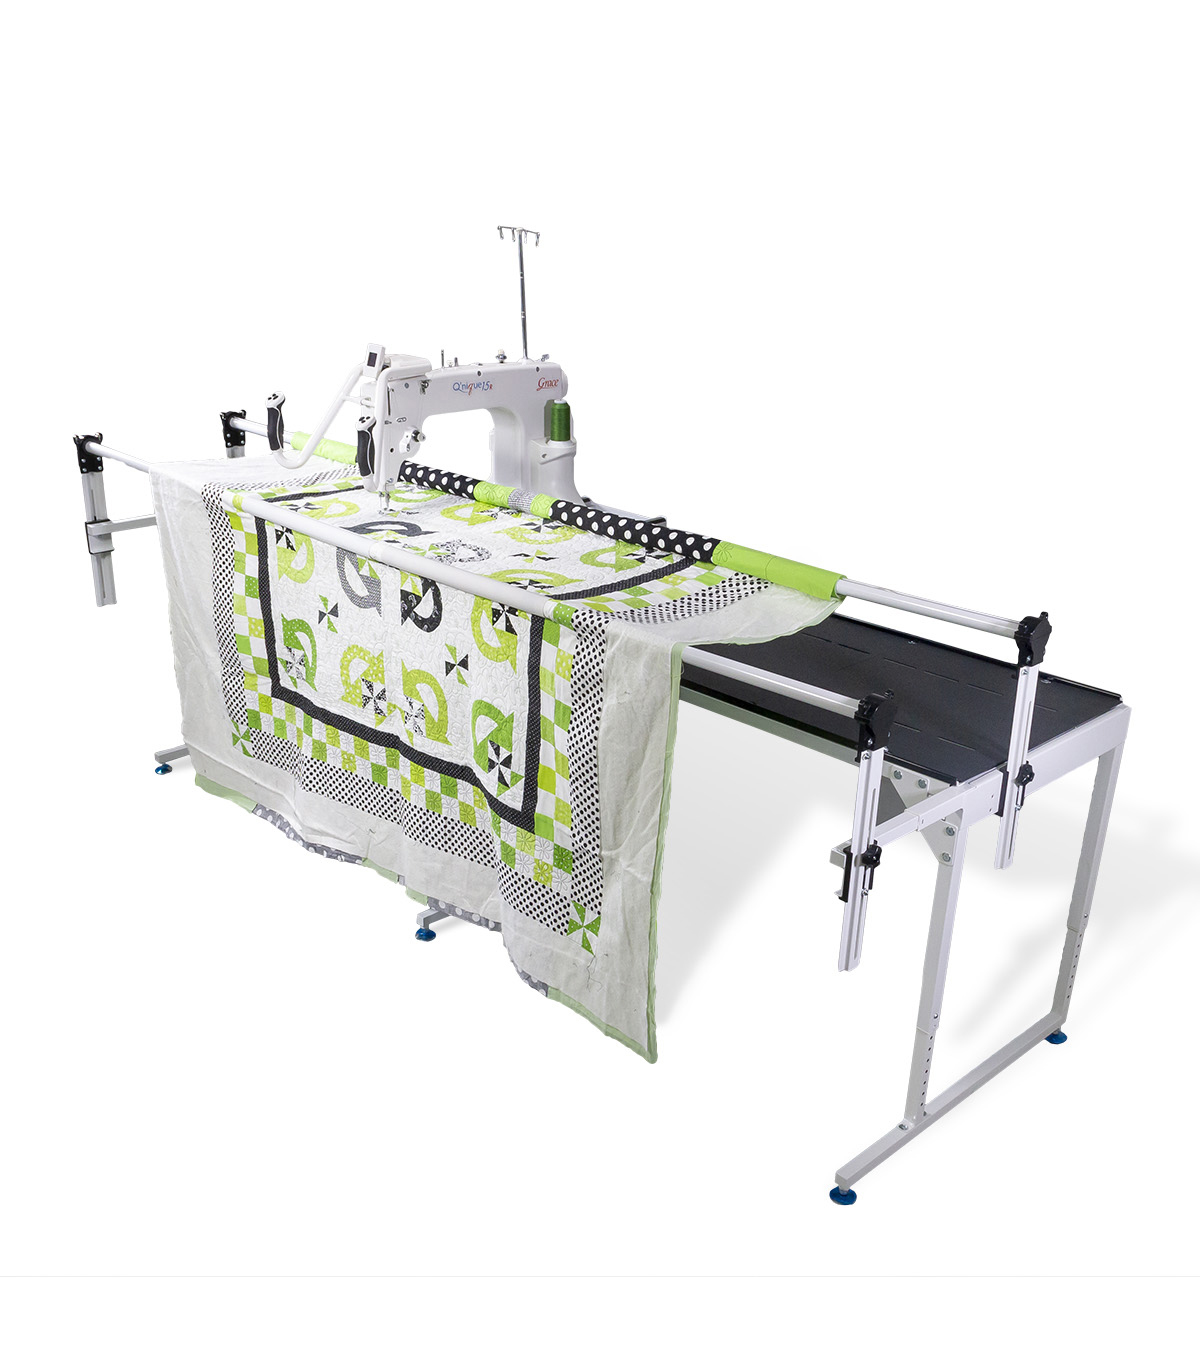 The Grace Company Q\u0027nique 15R Mid-arm Quilting Machine & Frame